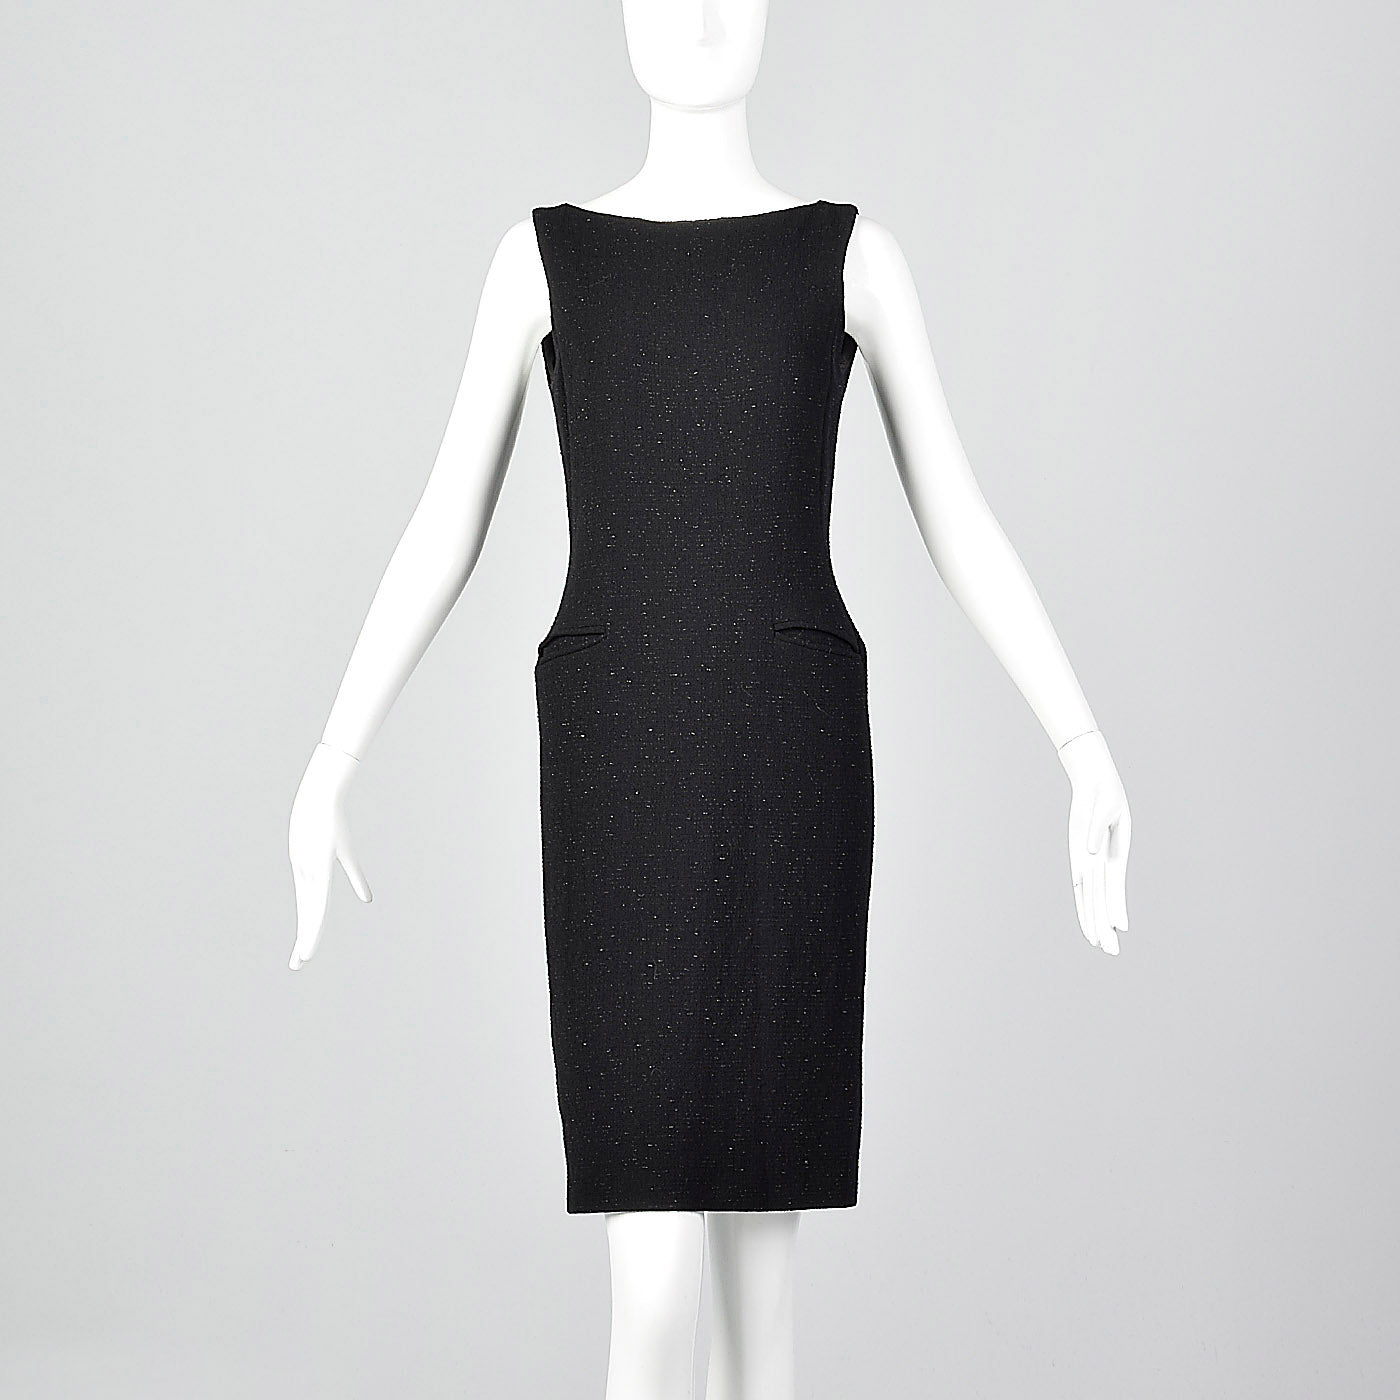 Moschino Cheap & Chic Tight Black Dress with Lurex Threads